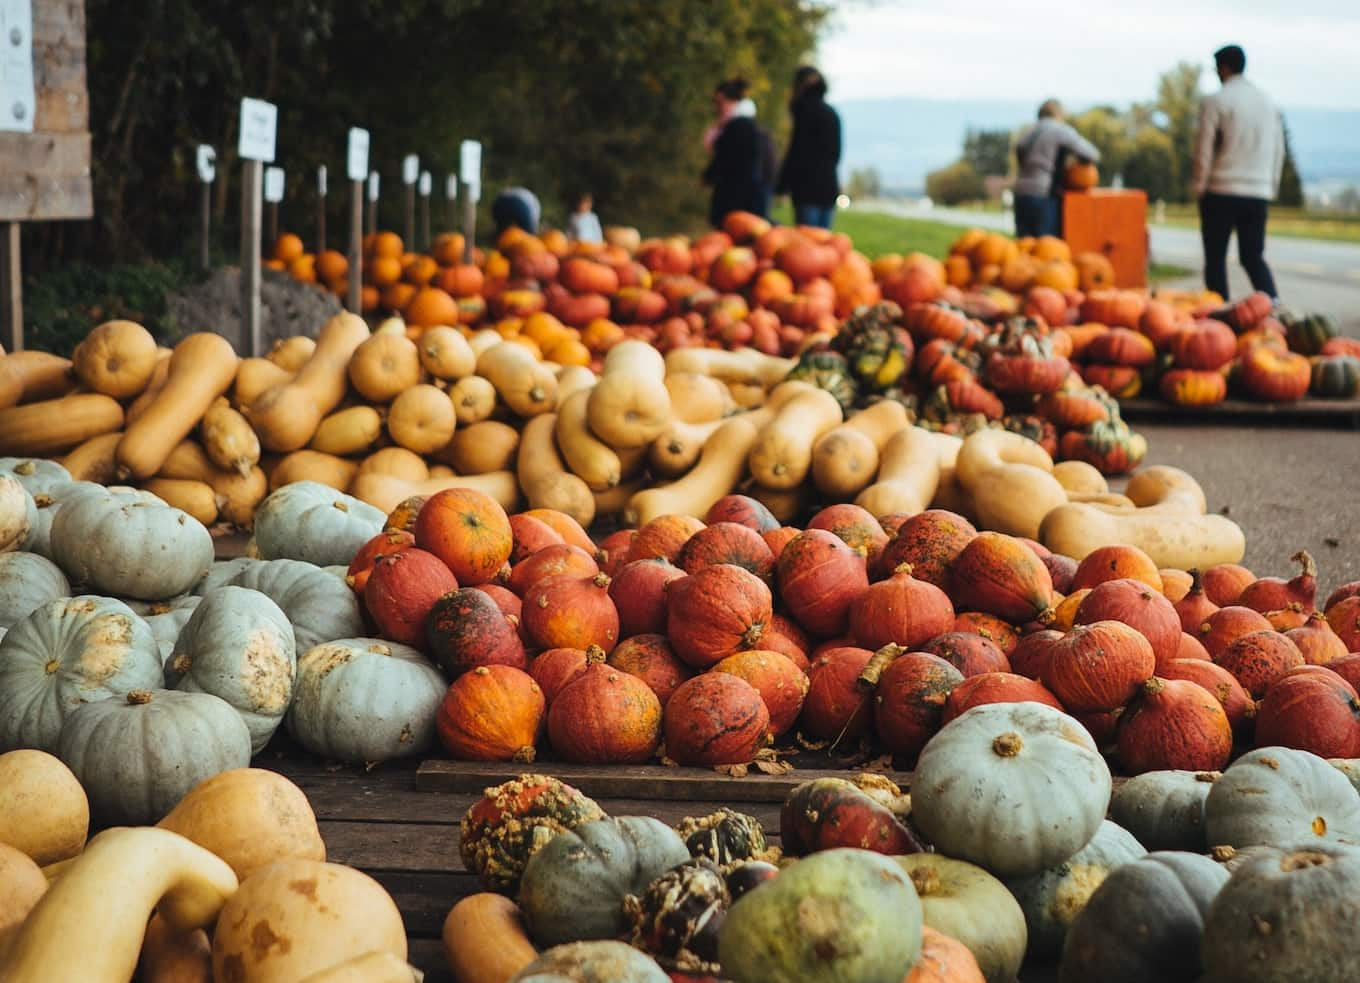 Piles of small pumpkins and gourds